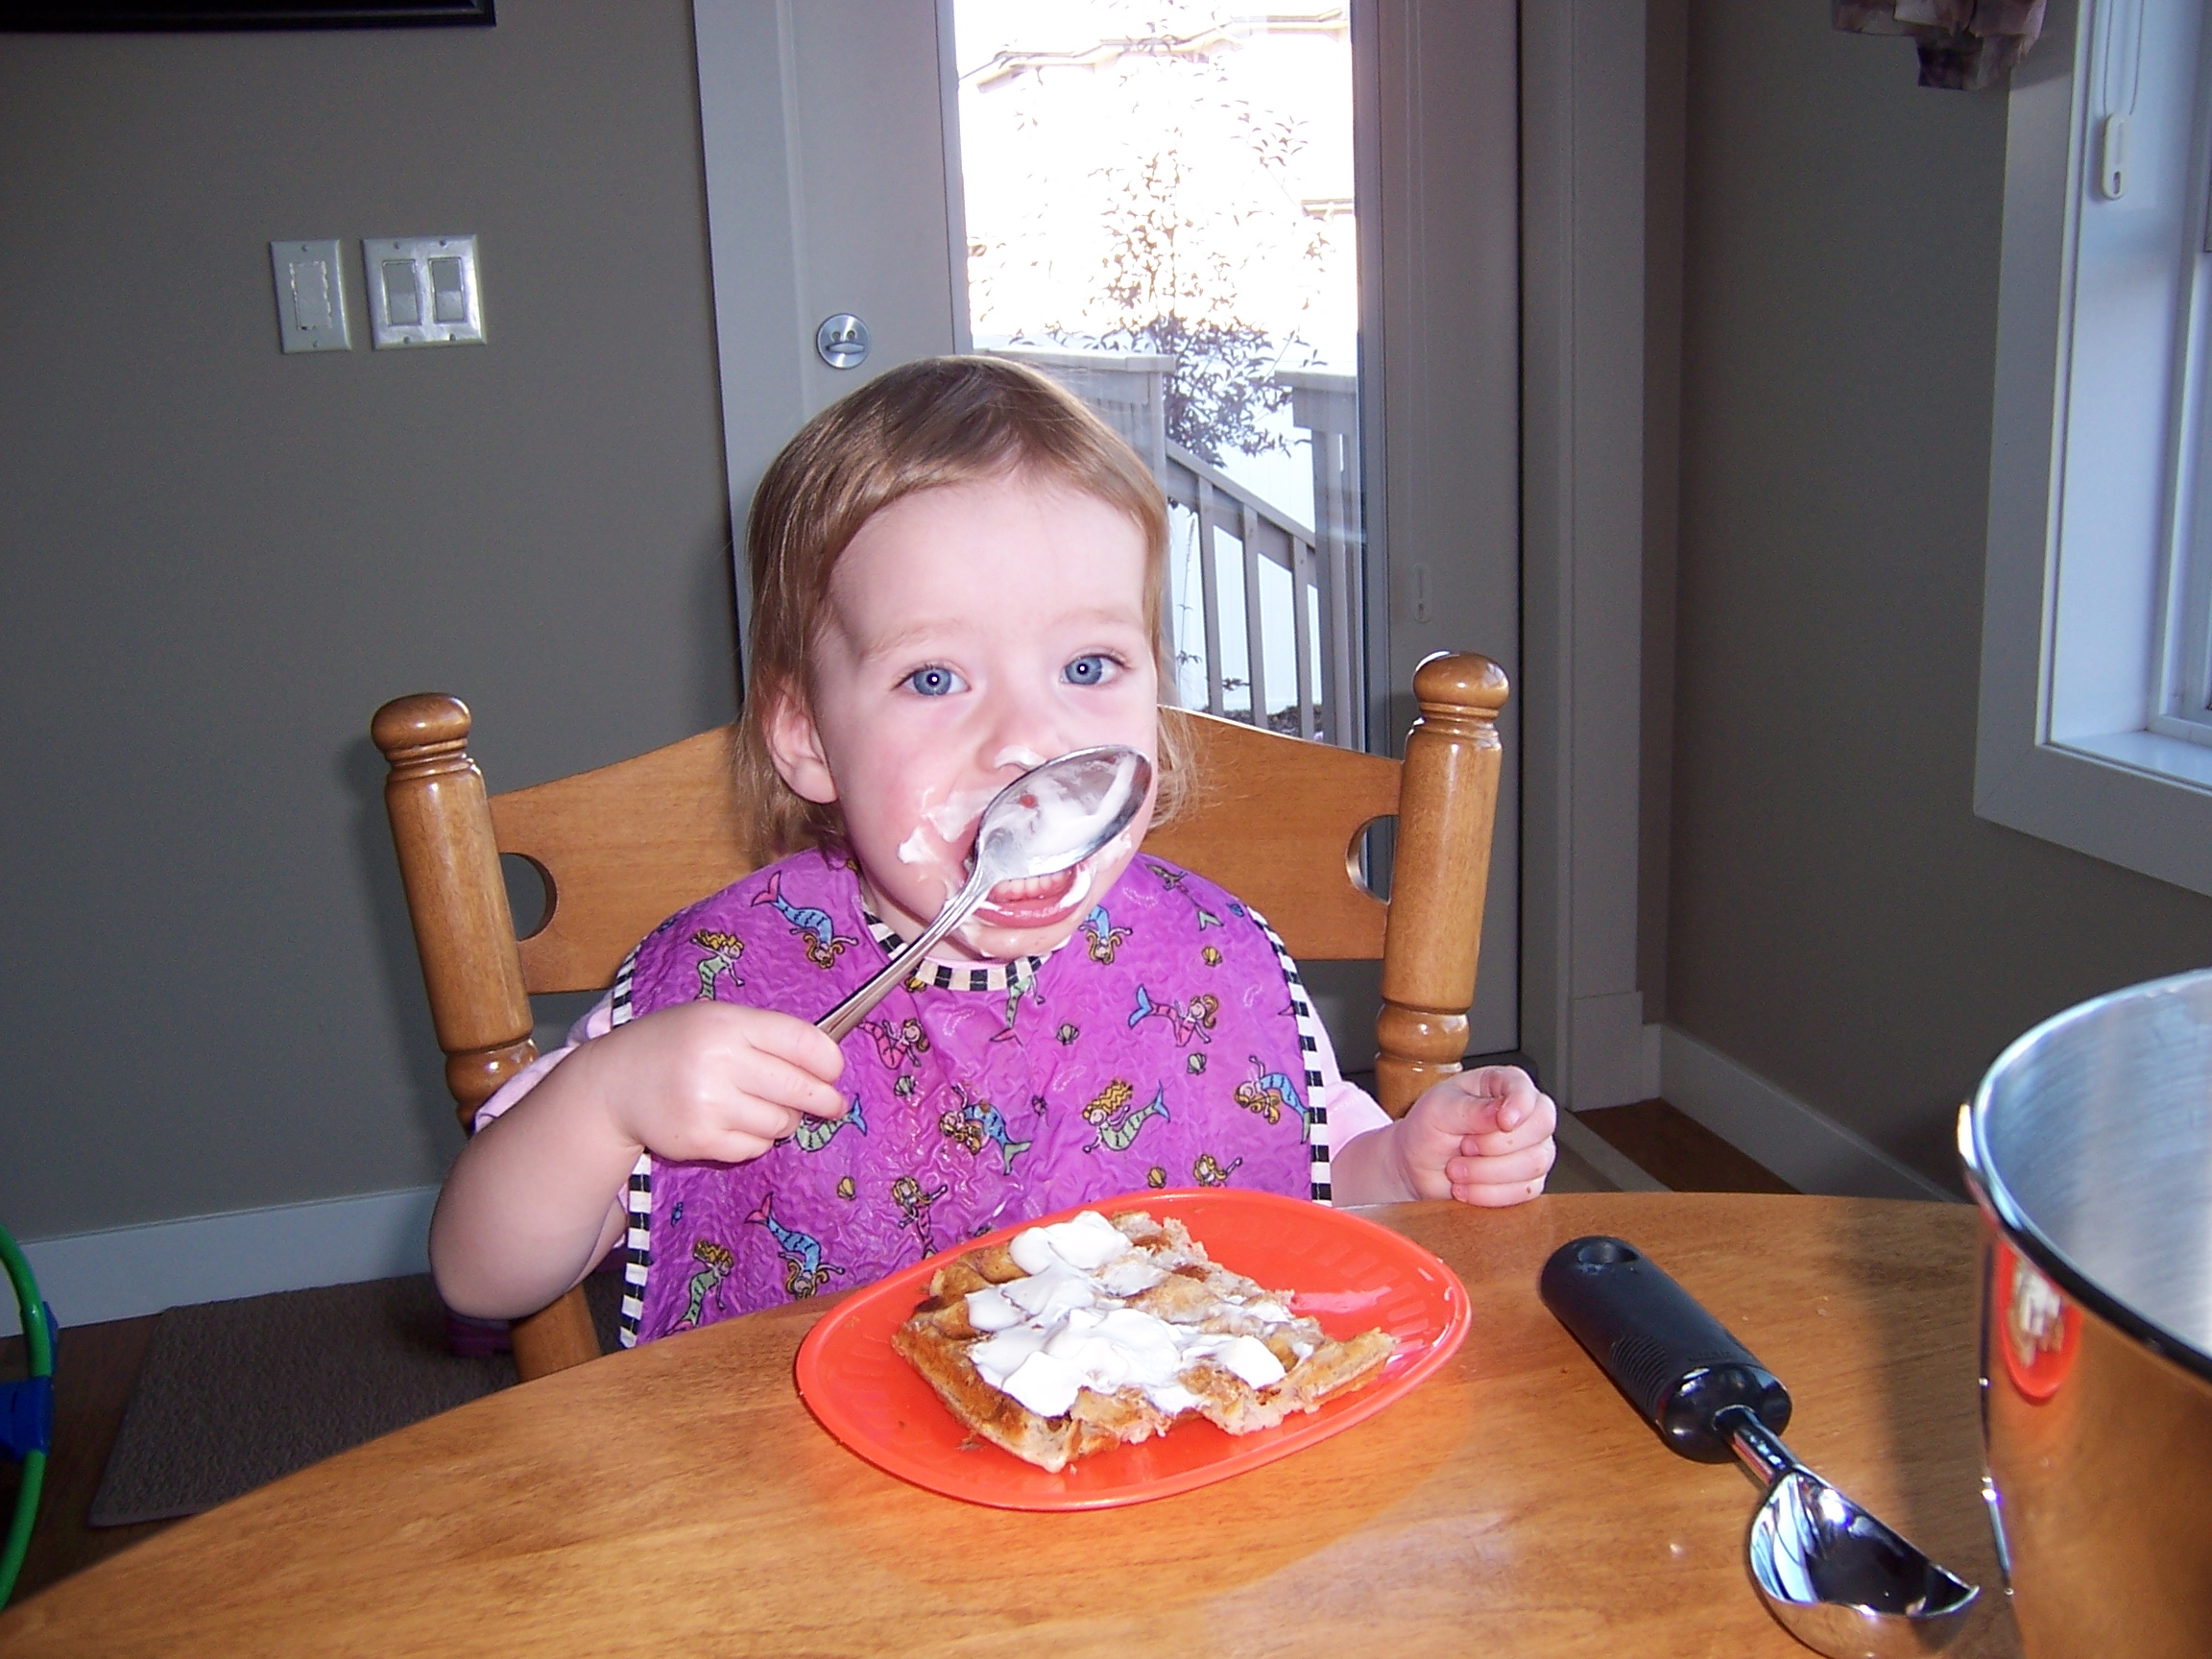 My daughter as a toddler when it seemed like she would only eat egg and milk-free waffles.